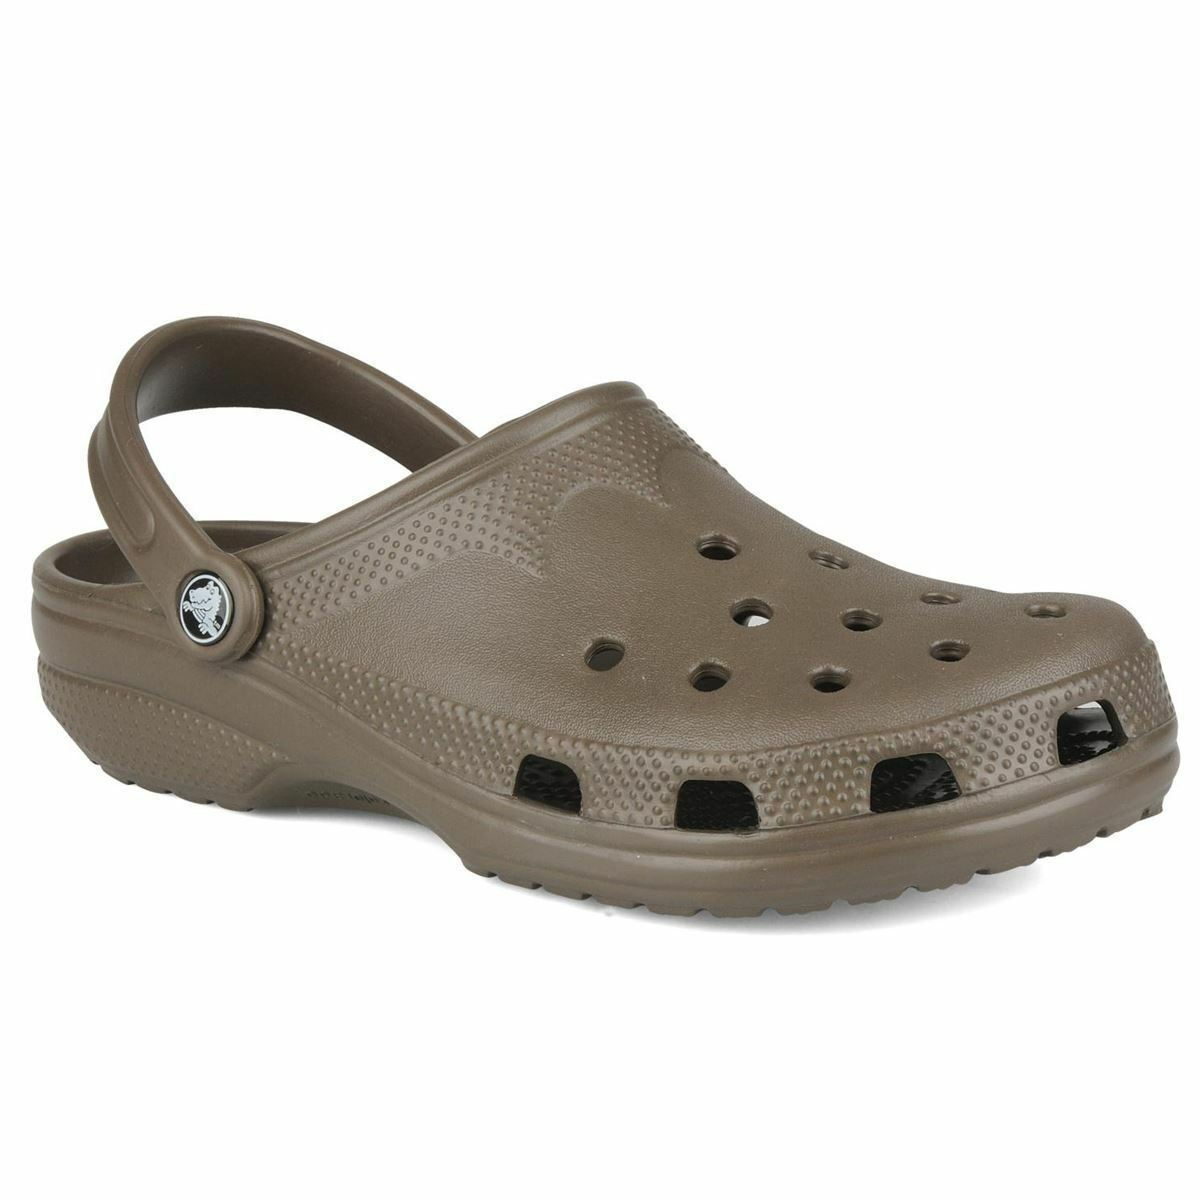 crocs slippers for men